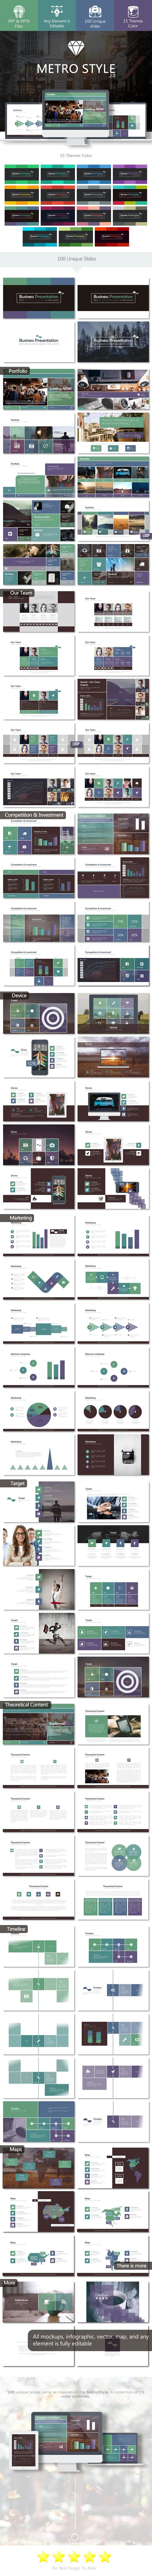 Metro Style 2.0 - PowerPoint Template #design #slides Buy Now: http://graphicriver.net/item/metro-style-20-powerpoint-template/12901321?ref=ksioks